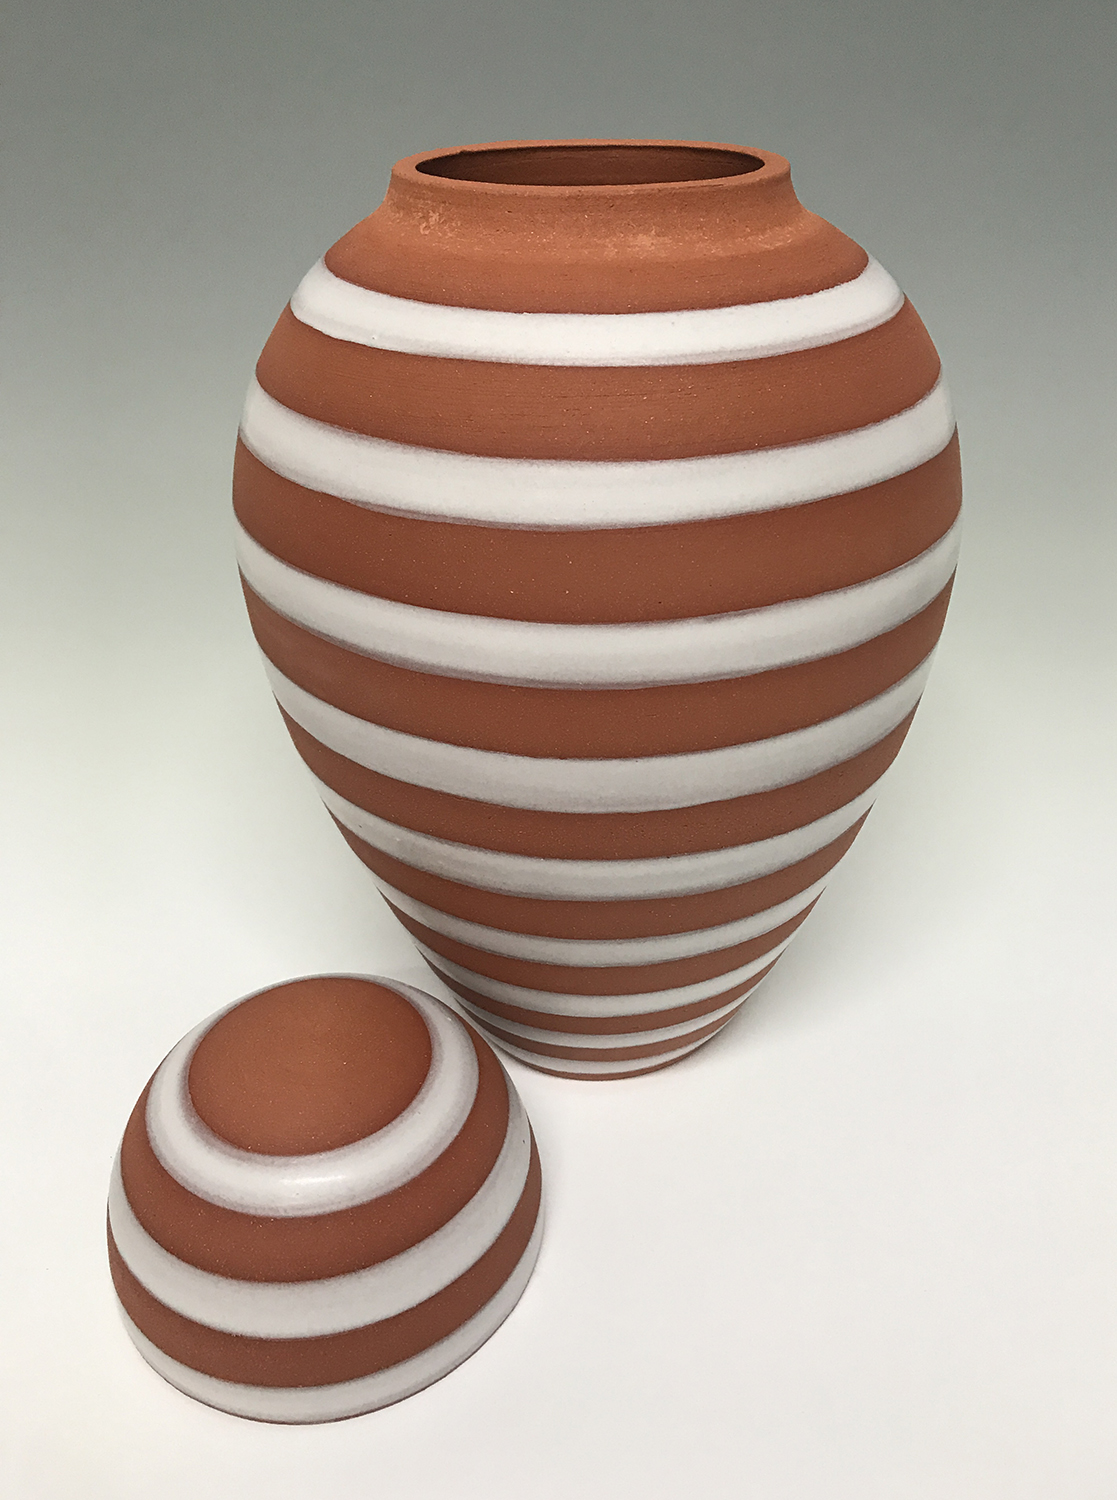 Urn with Stonehenge Glaze, 2019, terra cotta, 8.5 x 8.5 x 14 inches